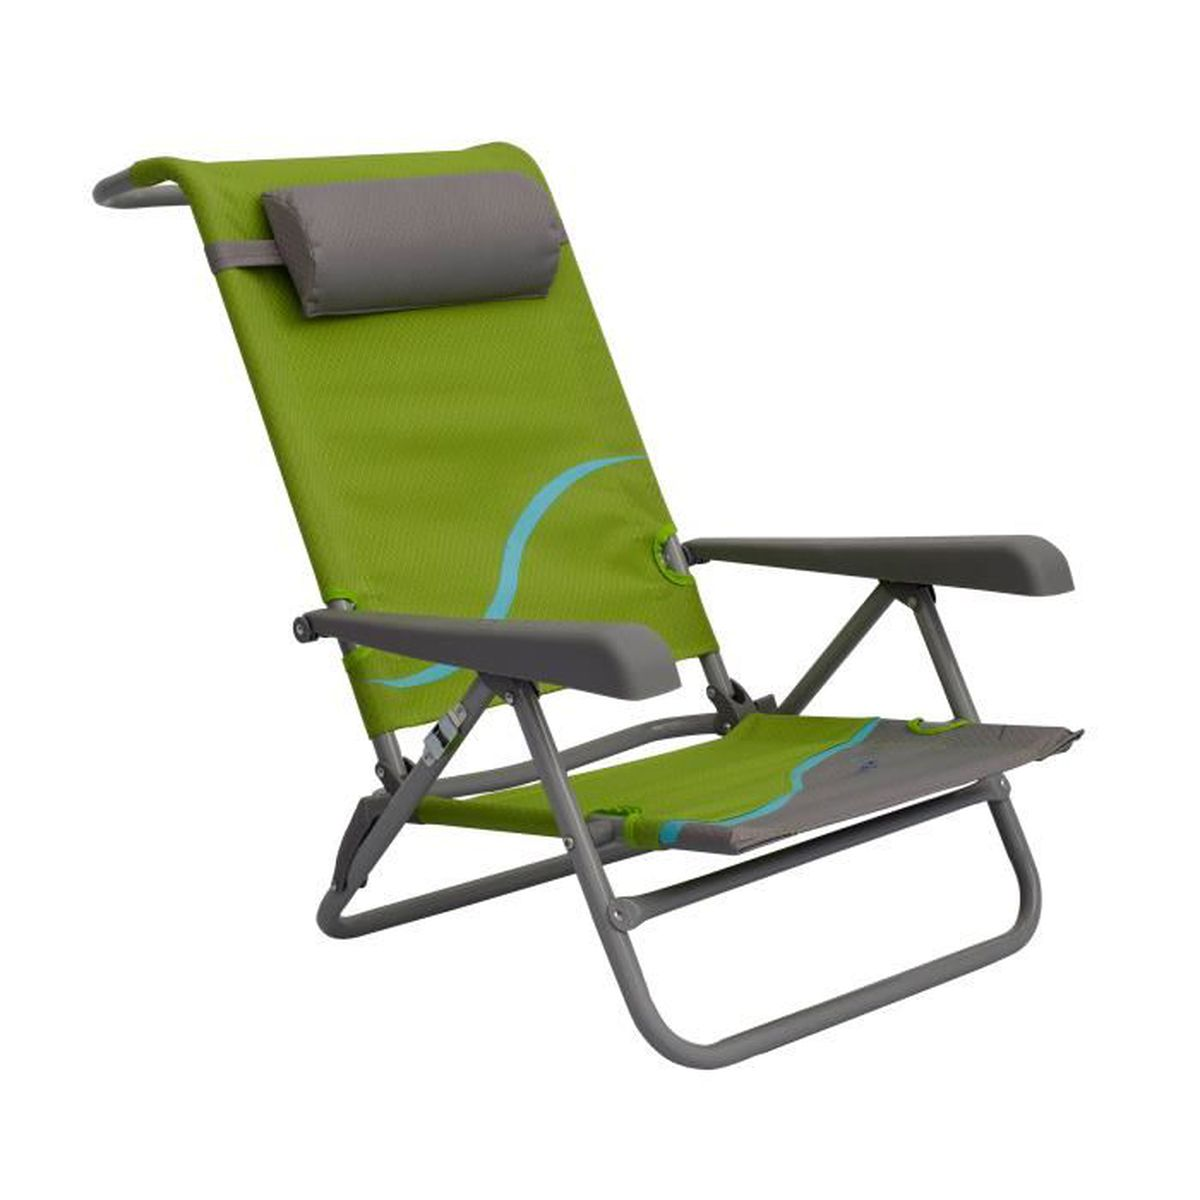 chaise de piscine chaise de piscine with chaise de On chaise longue pour piscine pas cher